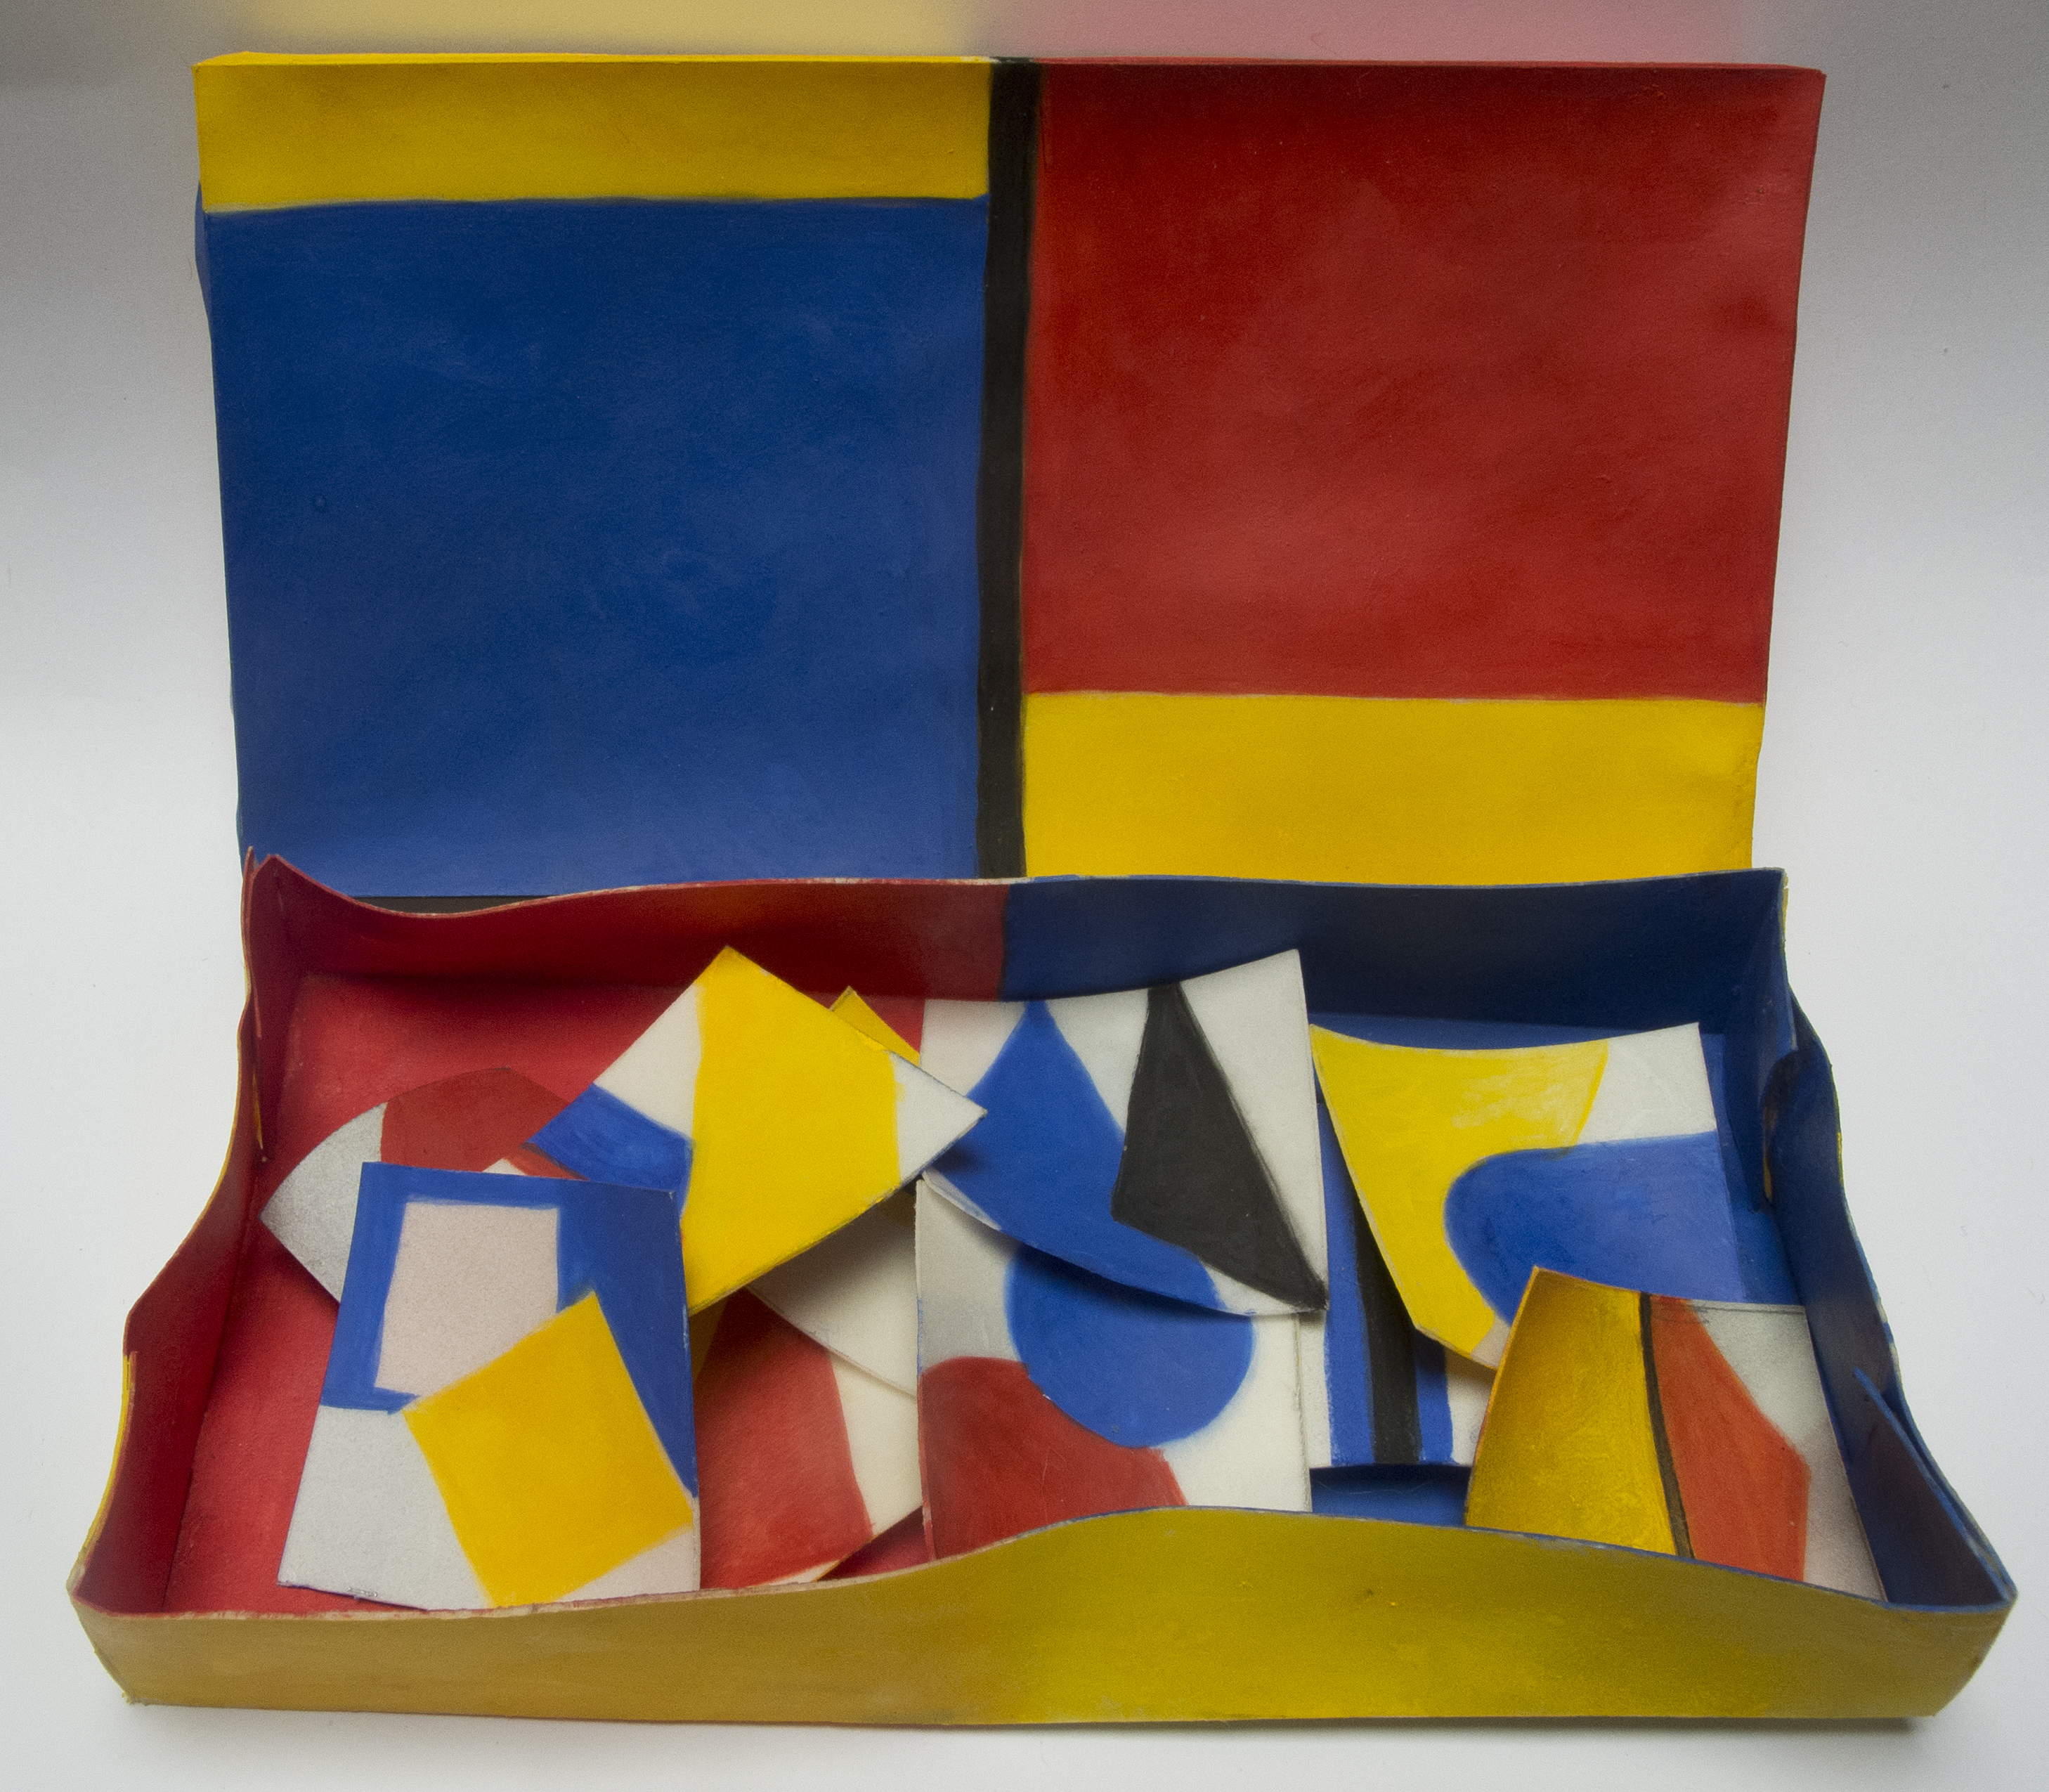 Altoon Sultan: Red Yellow Blue and Black, 2013, egg tempera on parchment, box 2 3/4 x 5 x 3/4 x 7/8